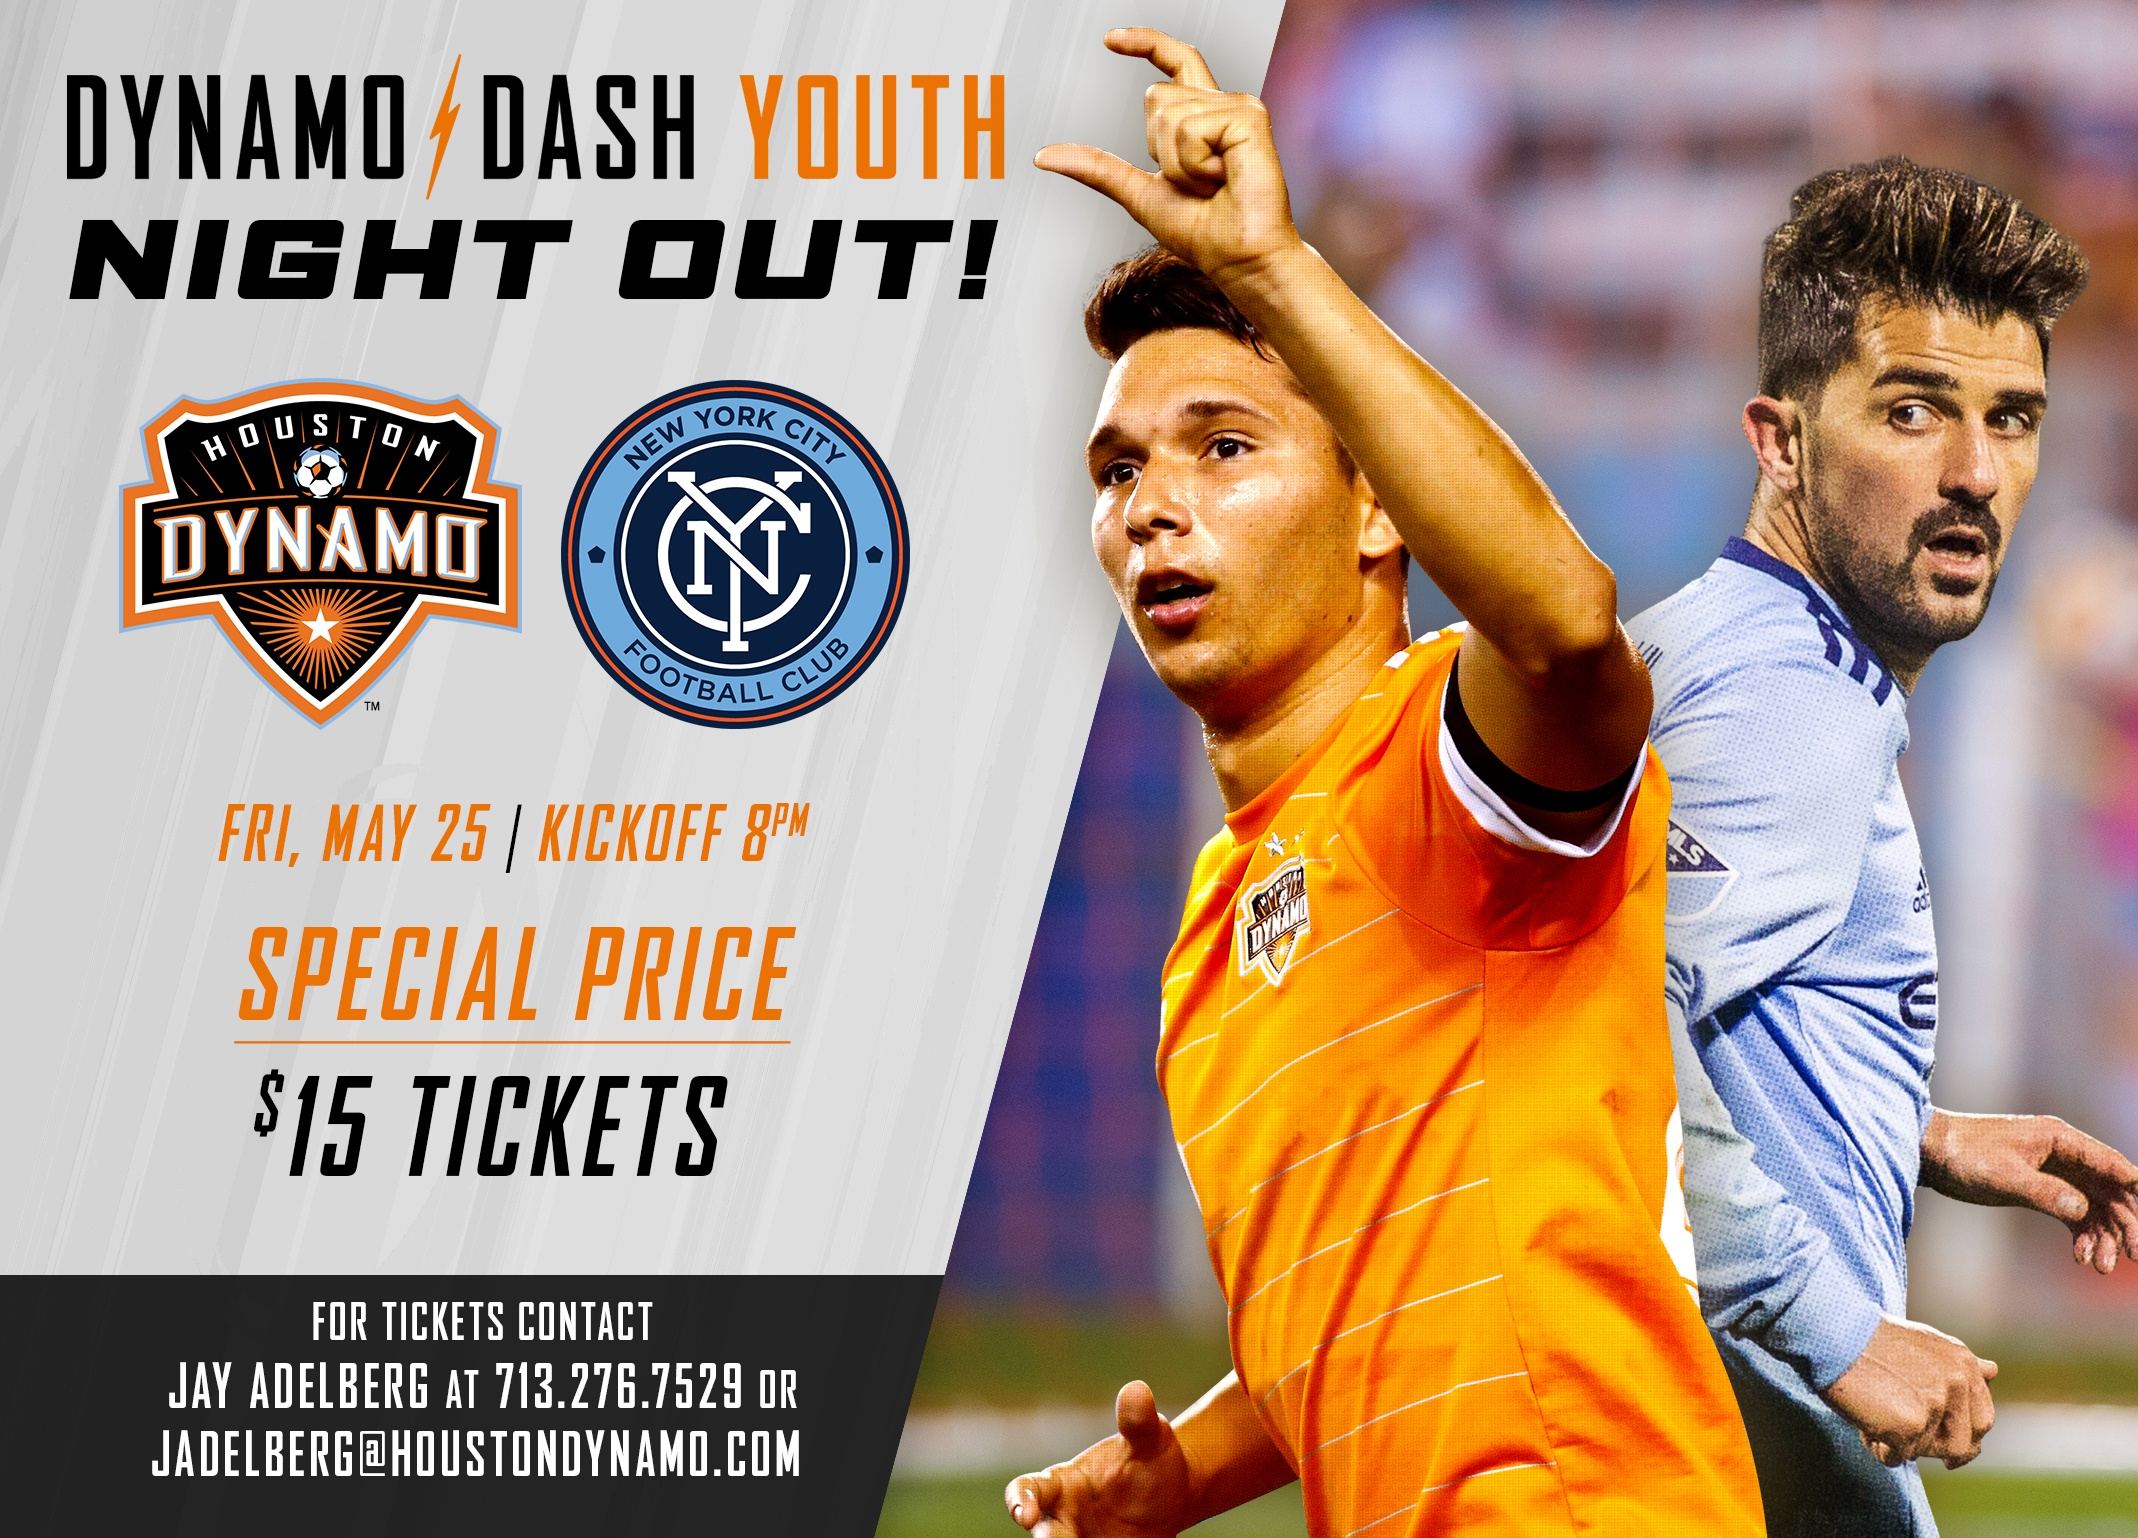 NYCFC Flyer